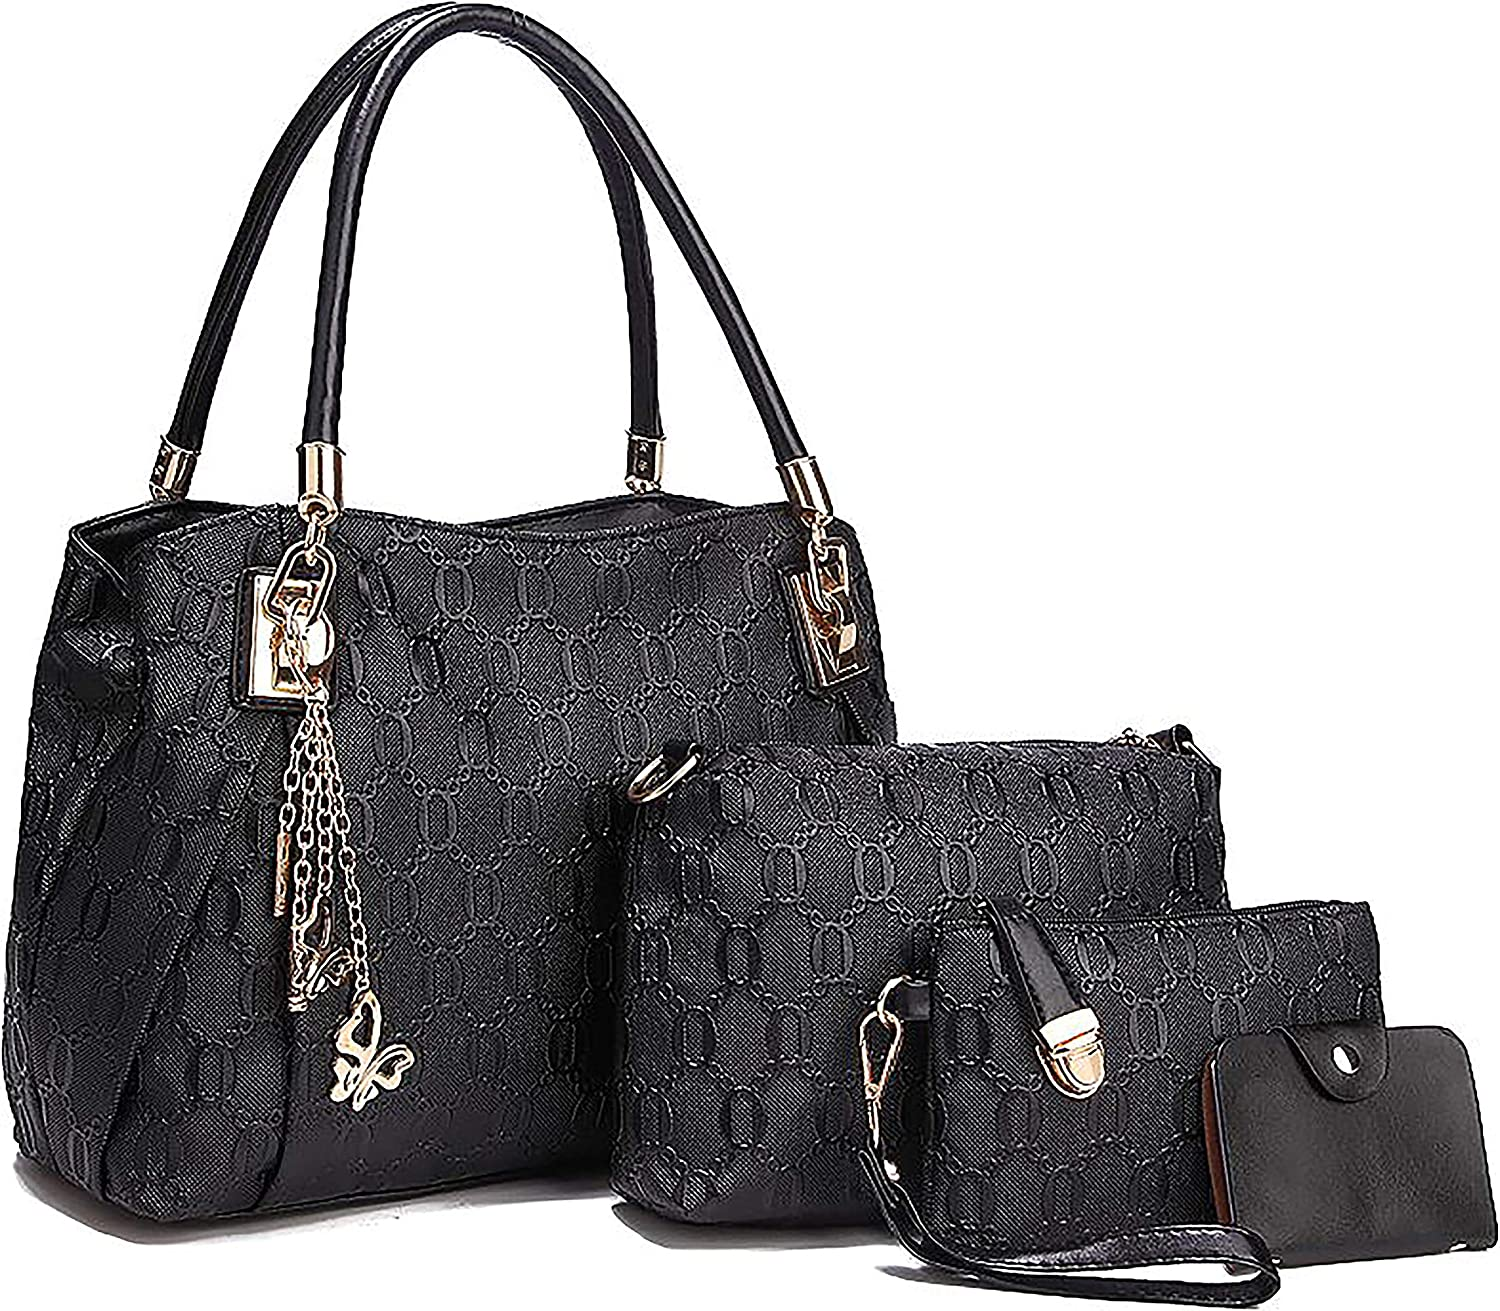 Women's Handbag Set Large Plus Bag Louisville-Jefferson County Mall Cosmetic Outlet ☆ Free Shipping Small AWL